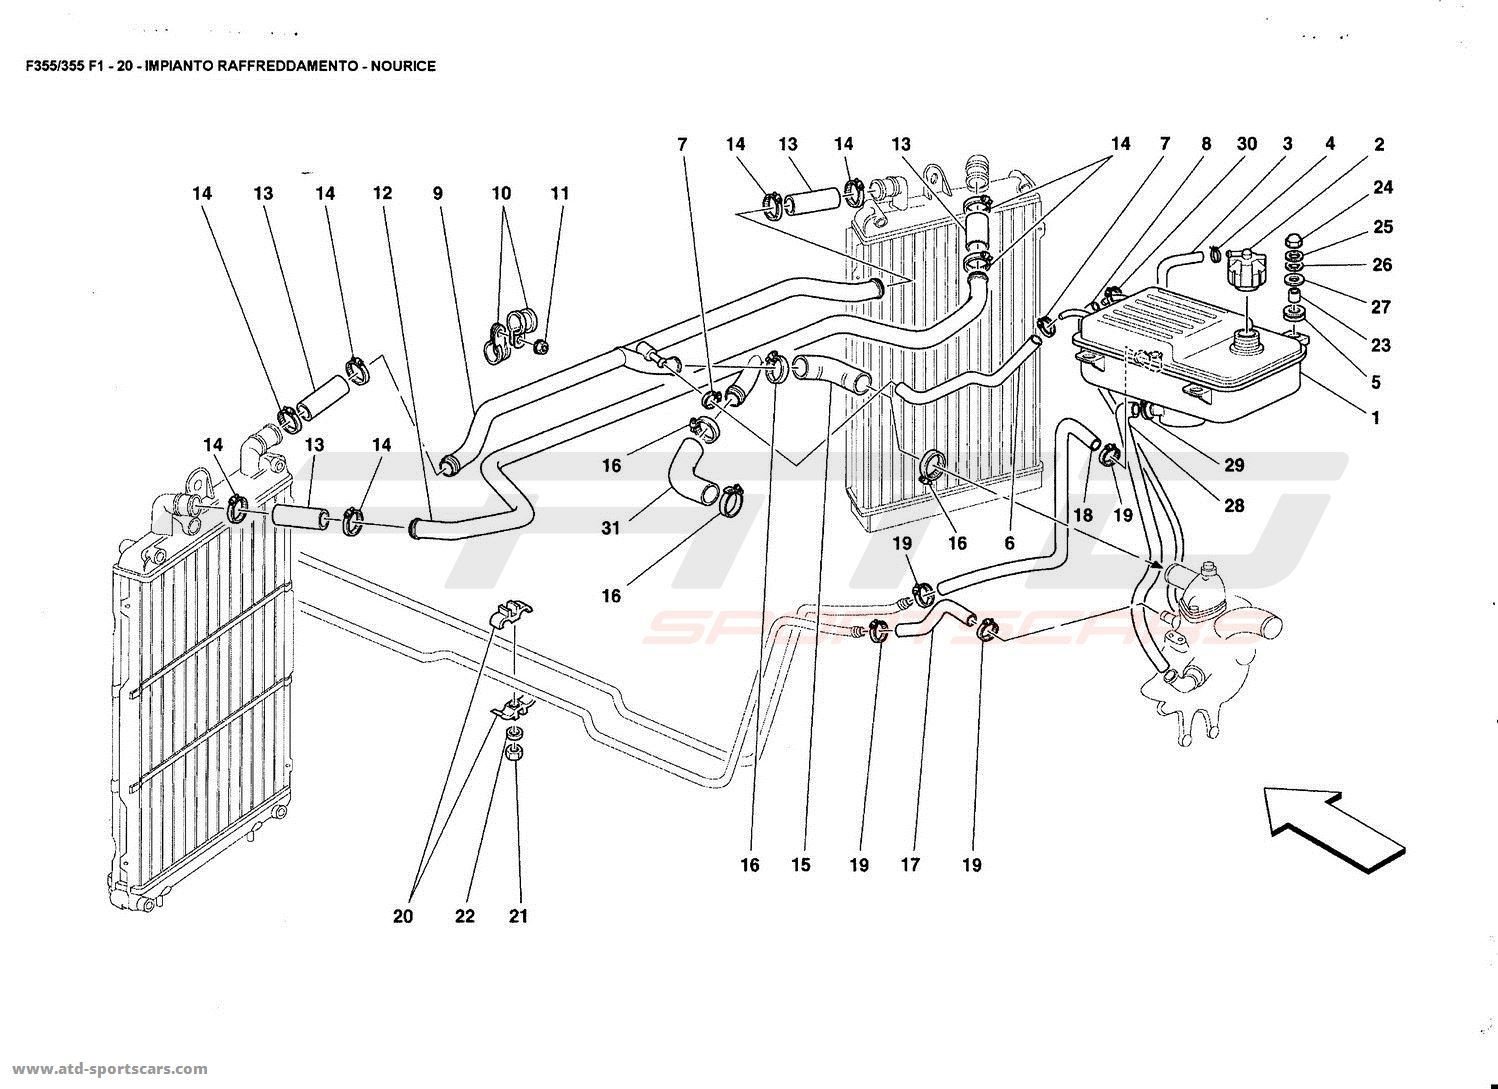 ferrari f355 5 2 et f1 cooling system nourice ferrari f355 5 2 f1 cooling air conditioning parts at atd ferrari 355 wiring diagram at crackthecode.co